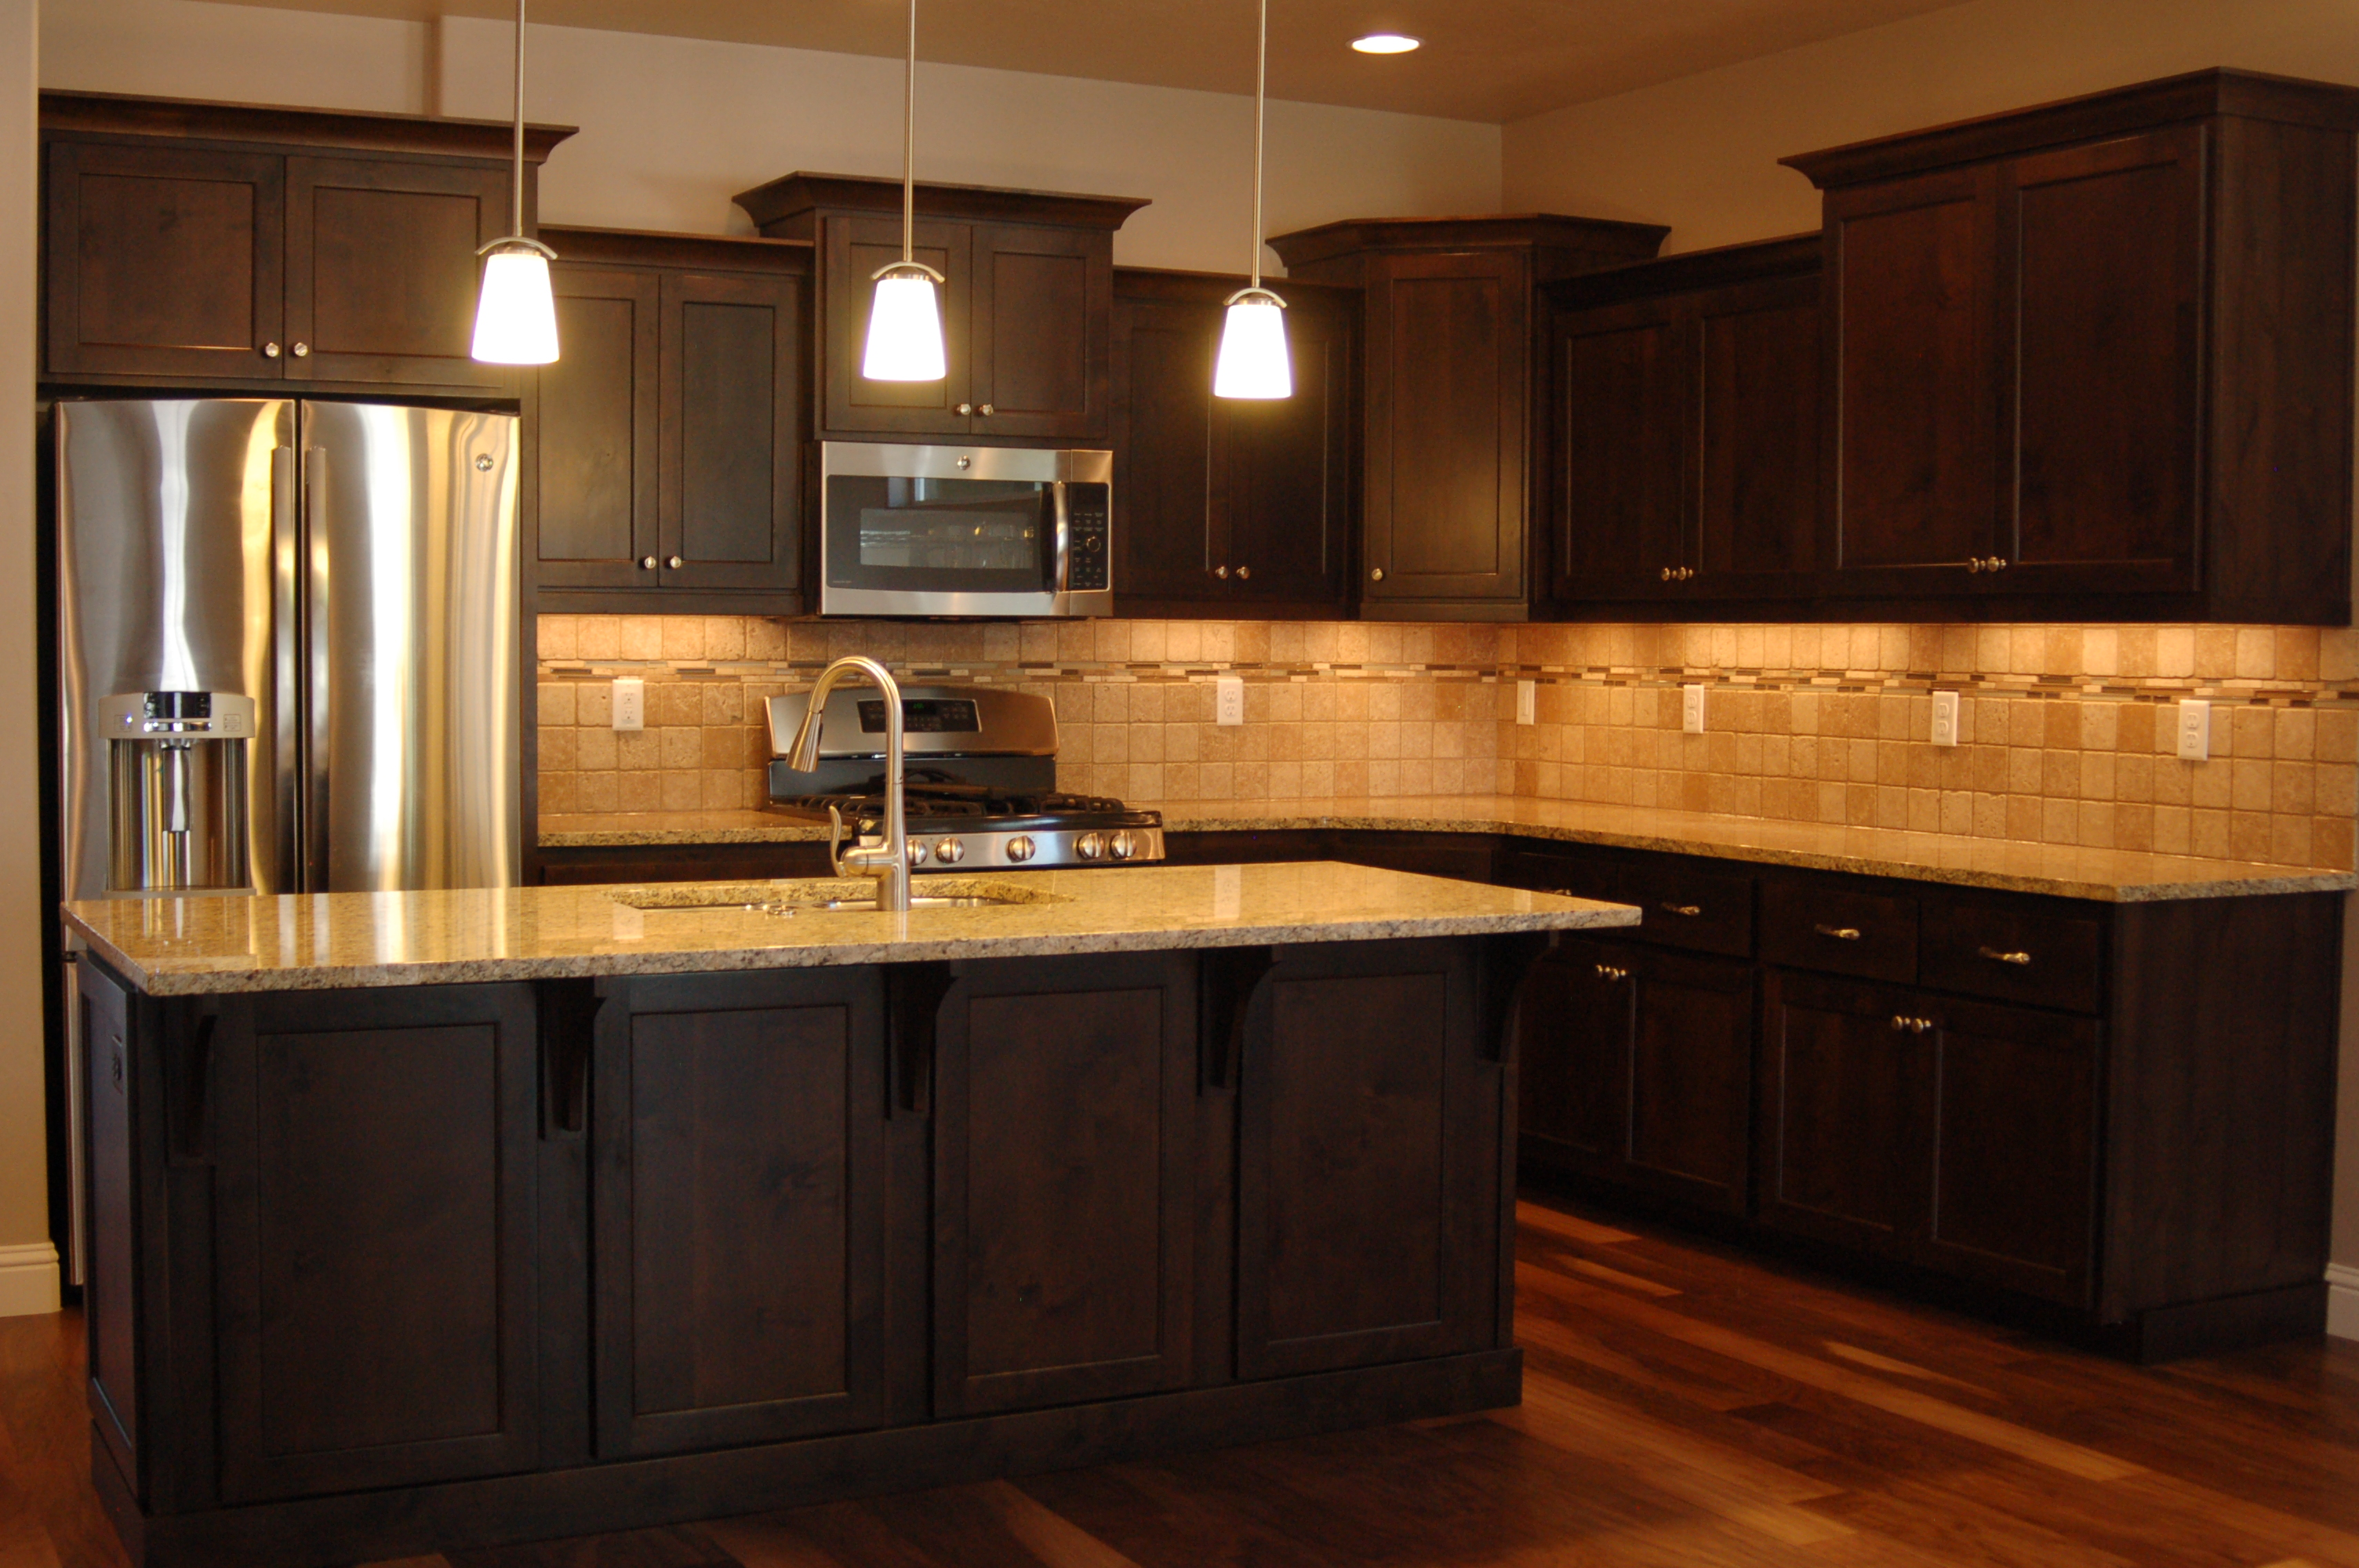 Foothills Cabinet Company Boise Idaho Kitchen Cabinets